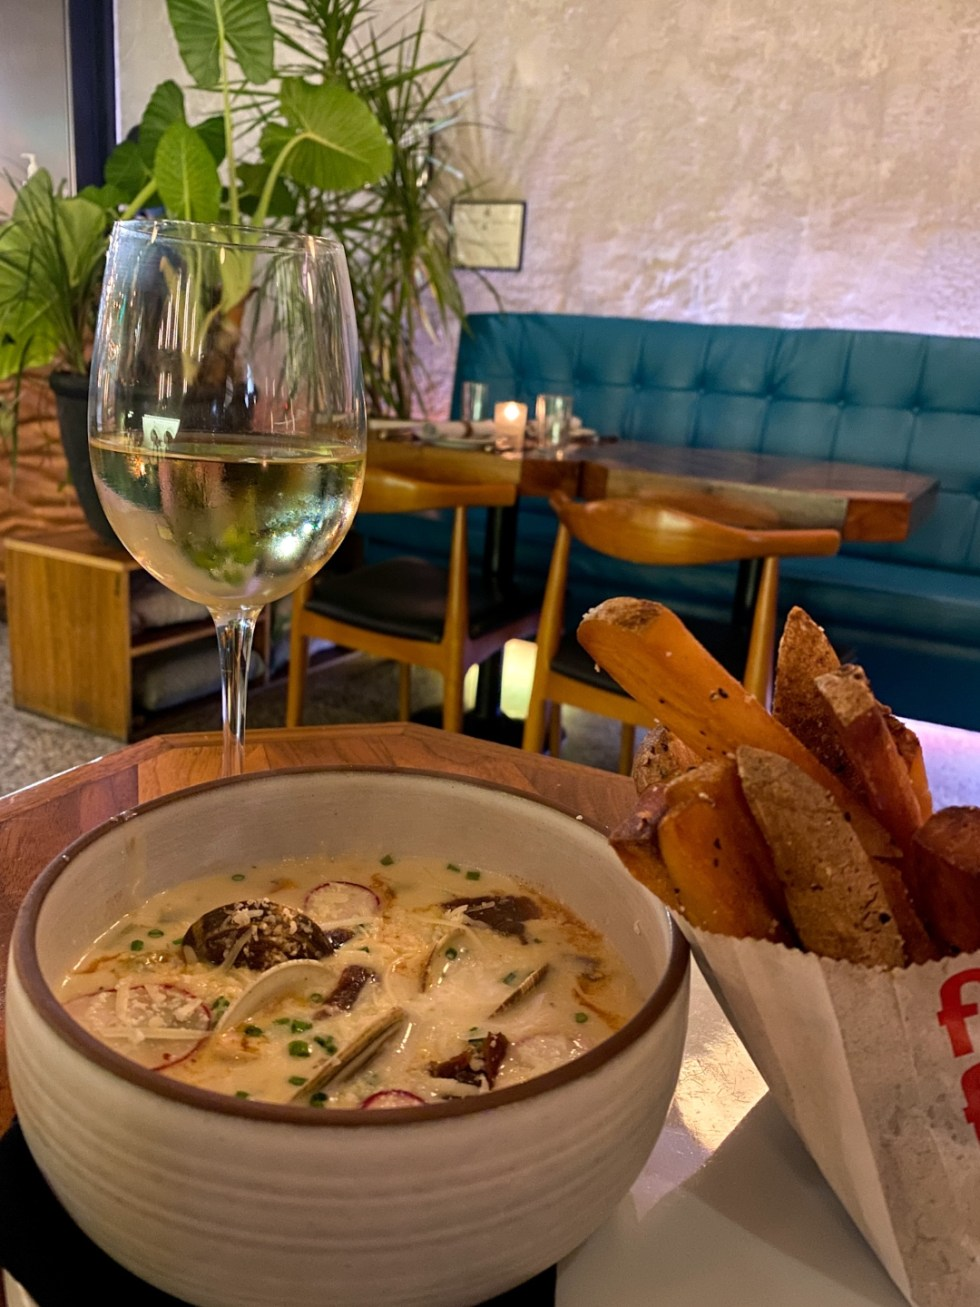 10 Iconic Dishes to Try in Raleigh - I'm Fixin' To - @imfixintoblog | Best Food in Raleigh NC by popular NC lifestyle blog, I'm Fixin' To: image of a glass of white wine, bowl of soup and bag of French fries.